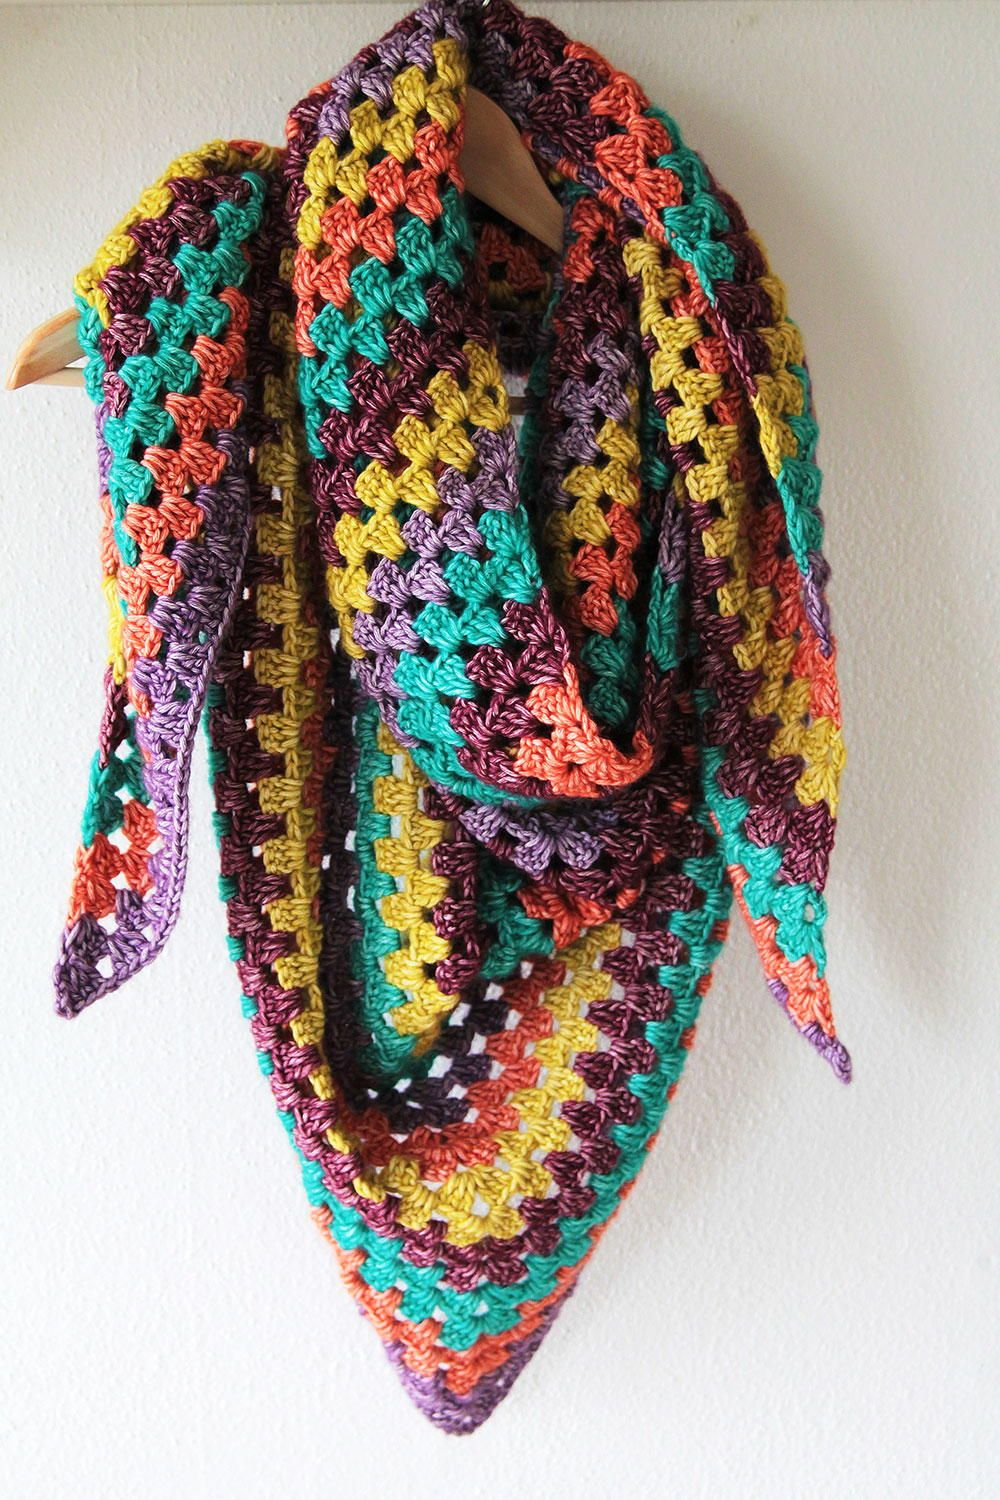 Crochet crochet shawls in the form of scales. Detailed diagram with photo and description for beginners